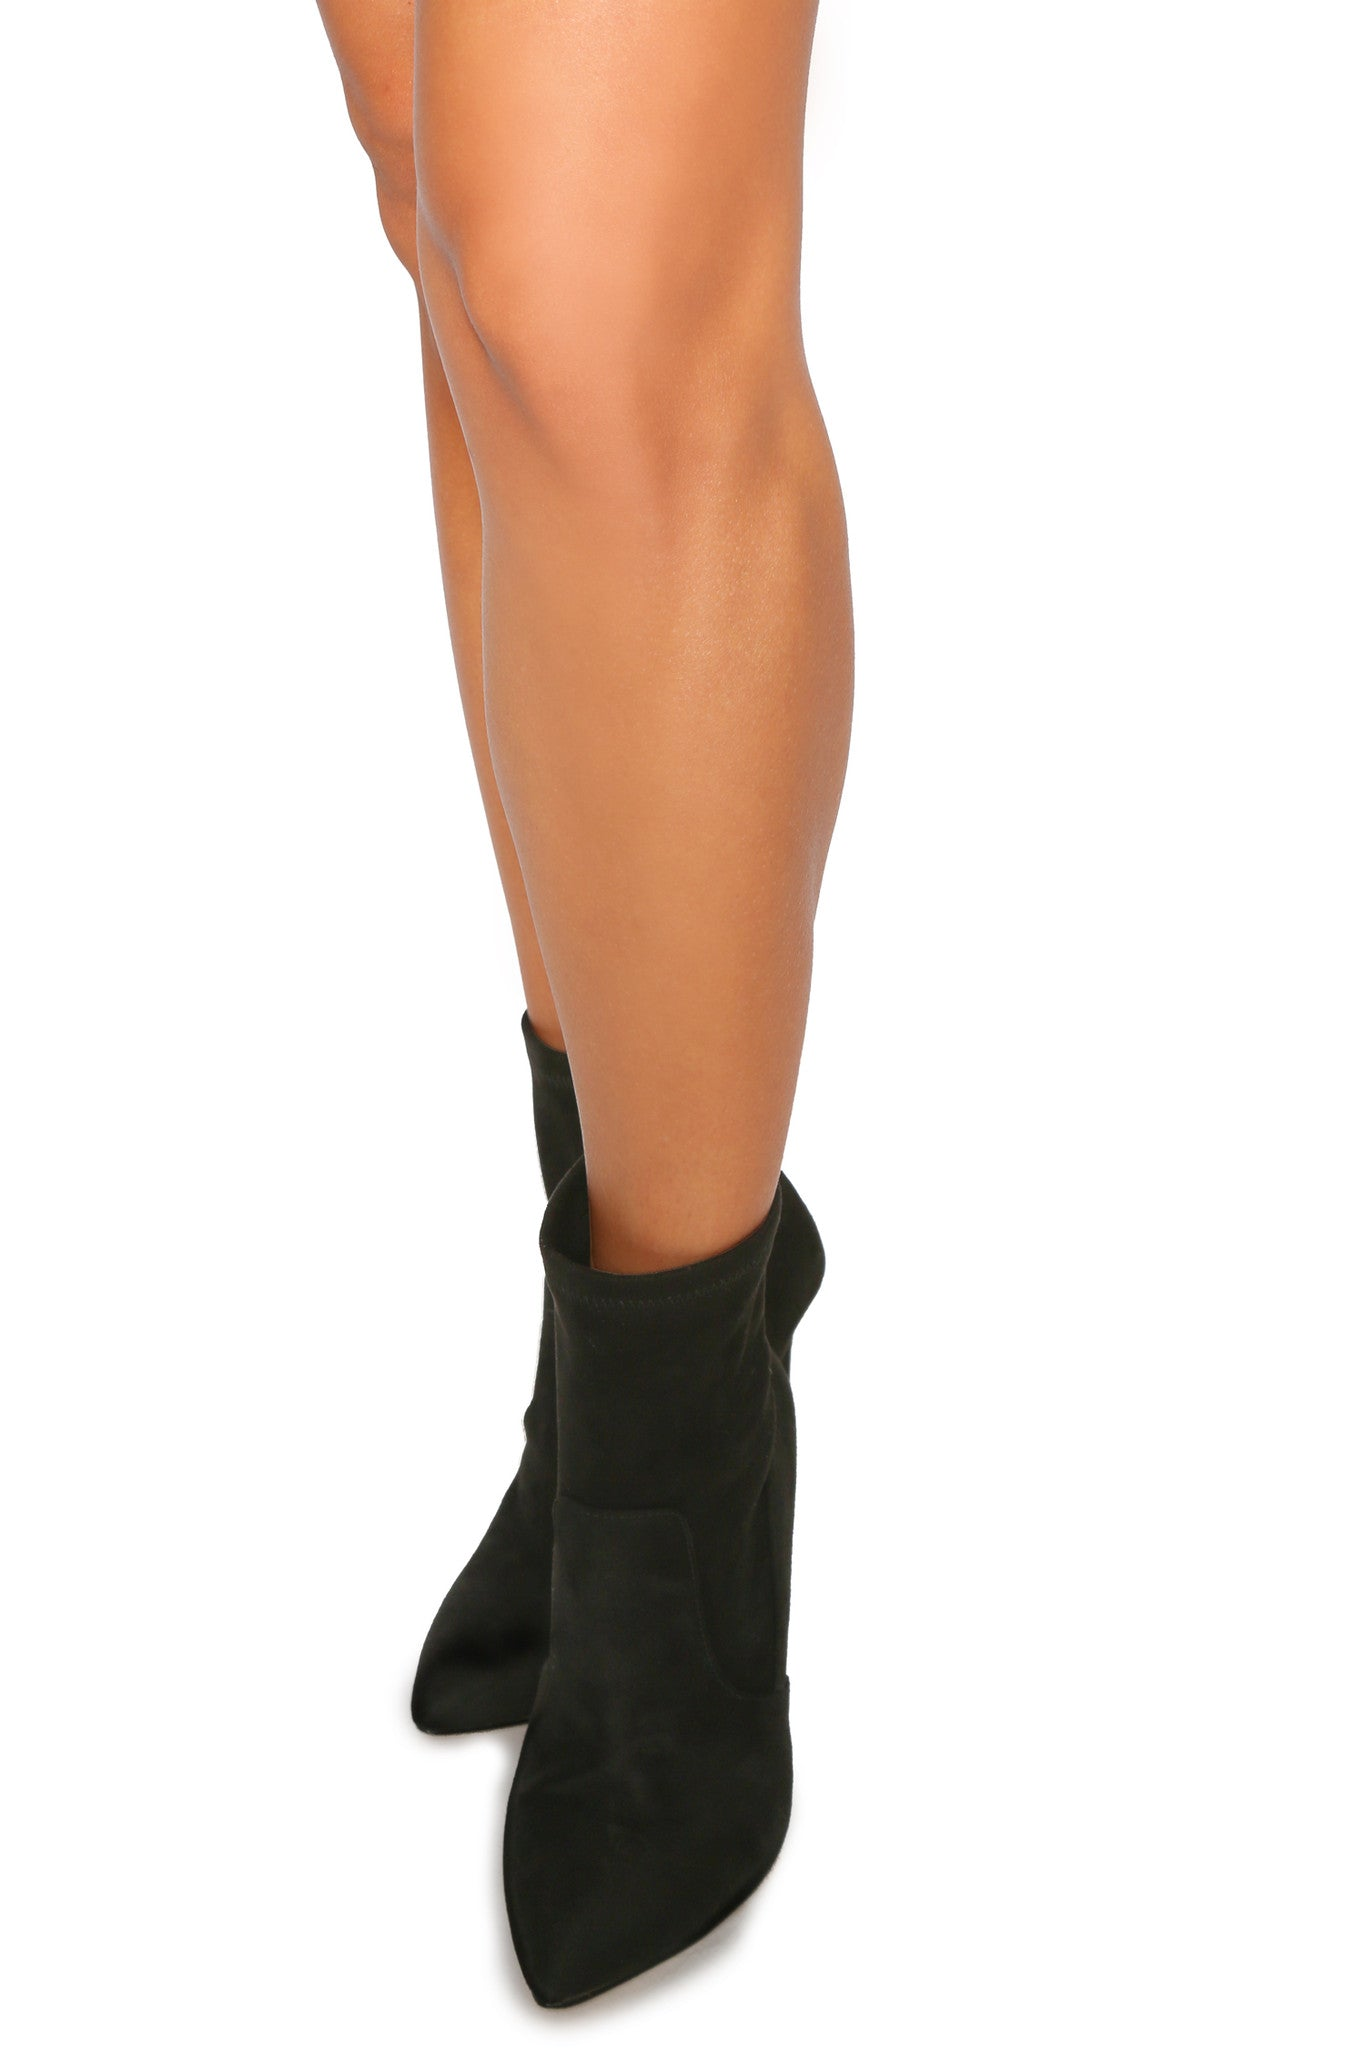 ARIANNA BOOTIES - Glam Envy - 2